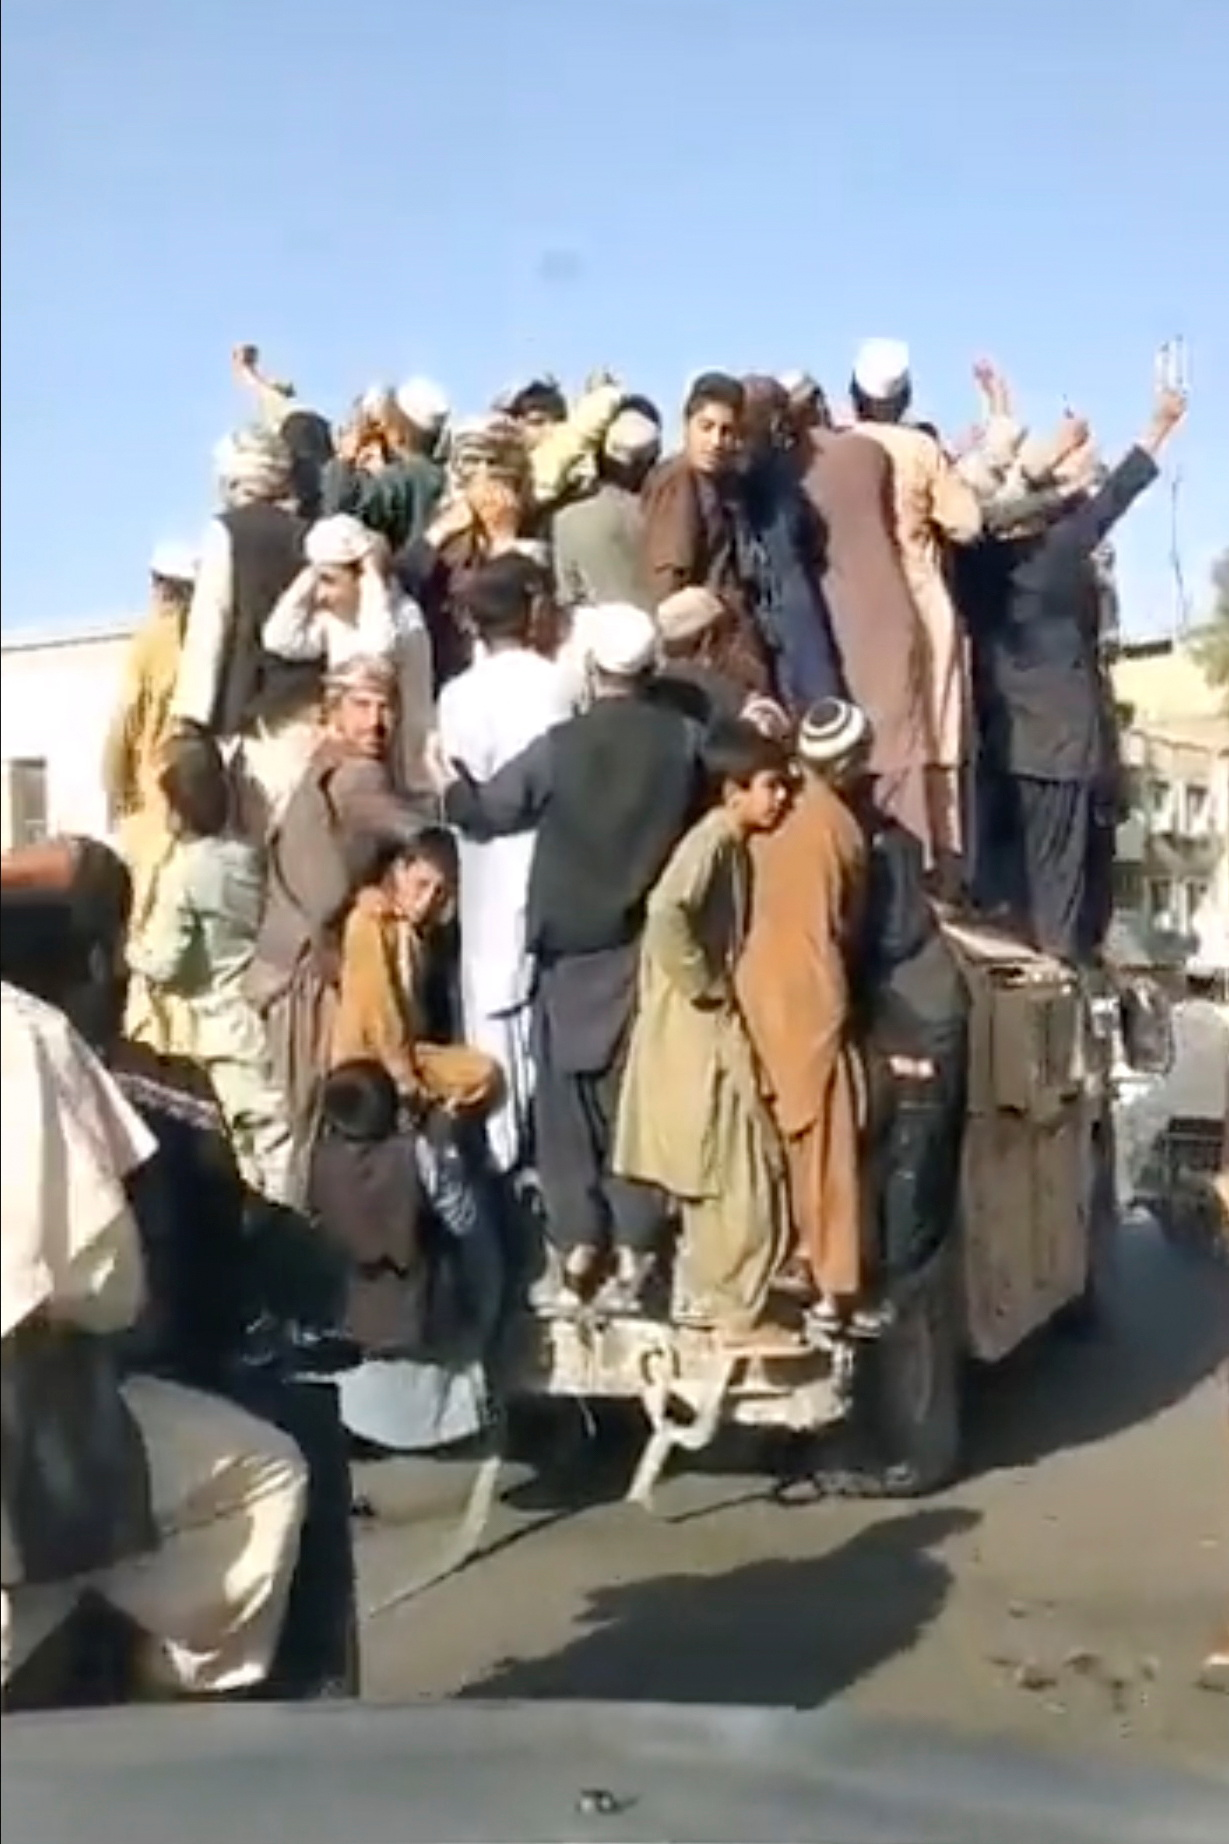 People standing atop an armored vehicle celebrate as it drives through Shaheedan Square, in the city of Kandahar, Afghanistan in this screen grab taken from a video from social media uploaded on August 13, 2021. TALIBAN HANDOUT/via REUTERS  THIS IMAGE HAS BEEN SUPPLIED BY A THIRD PARTY.